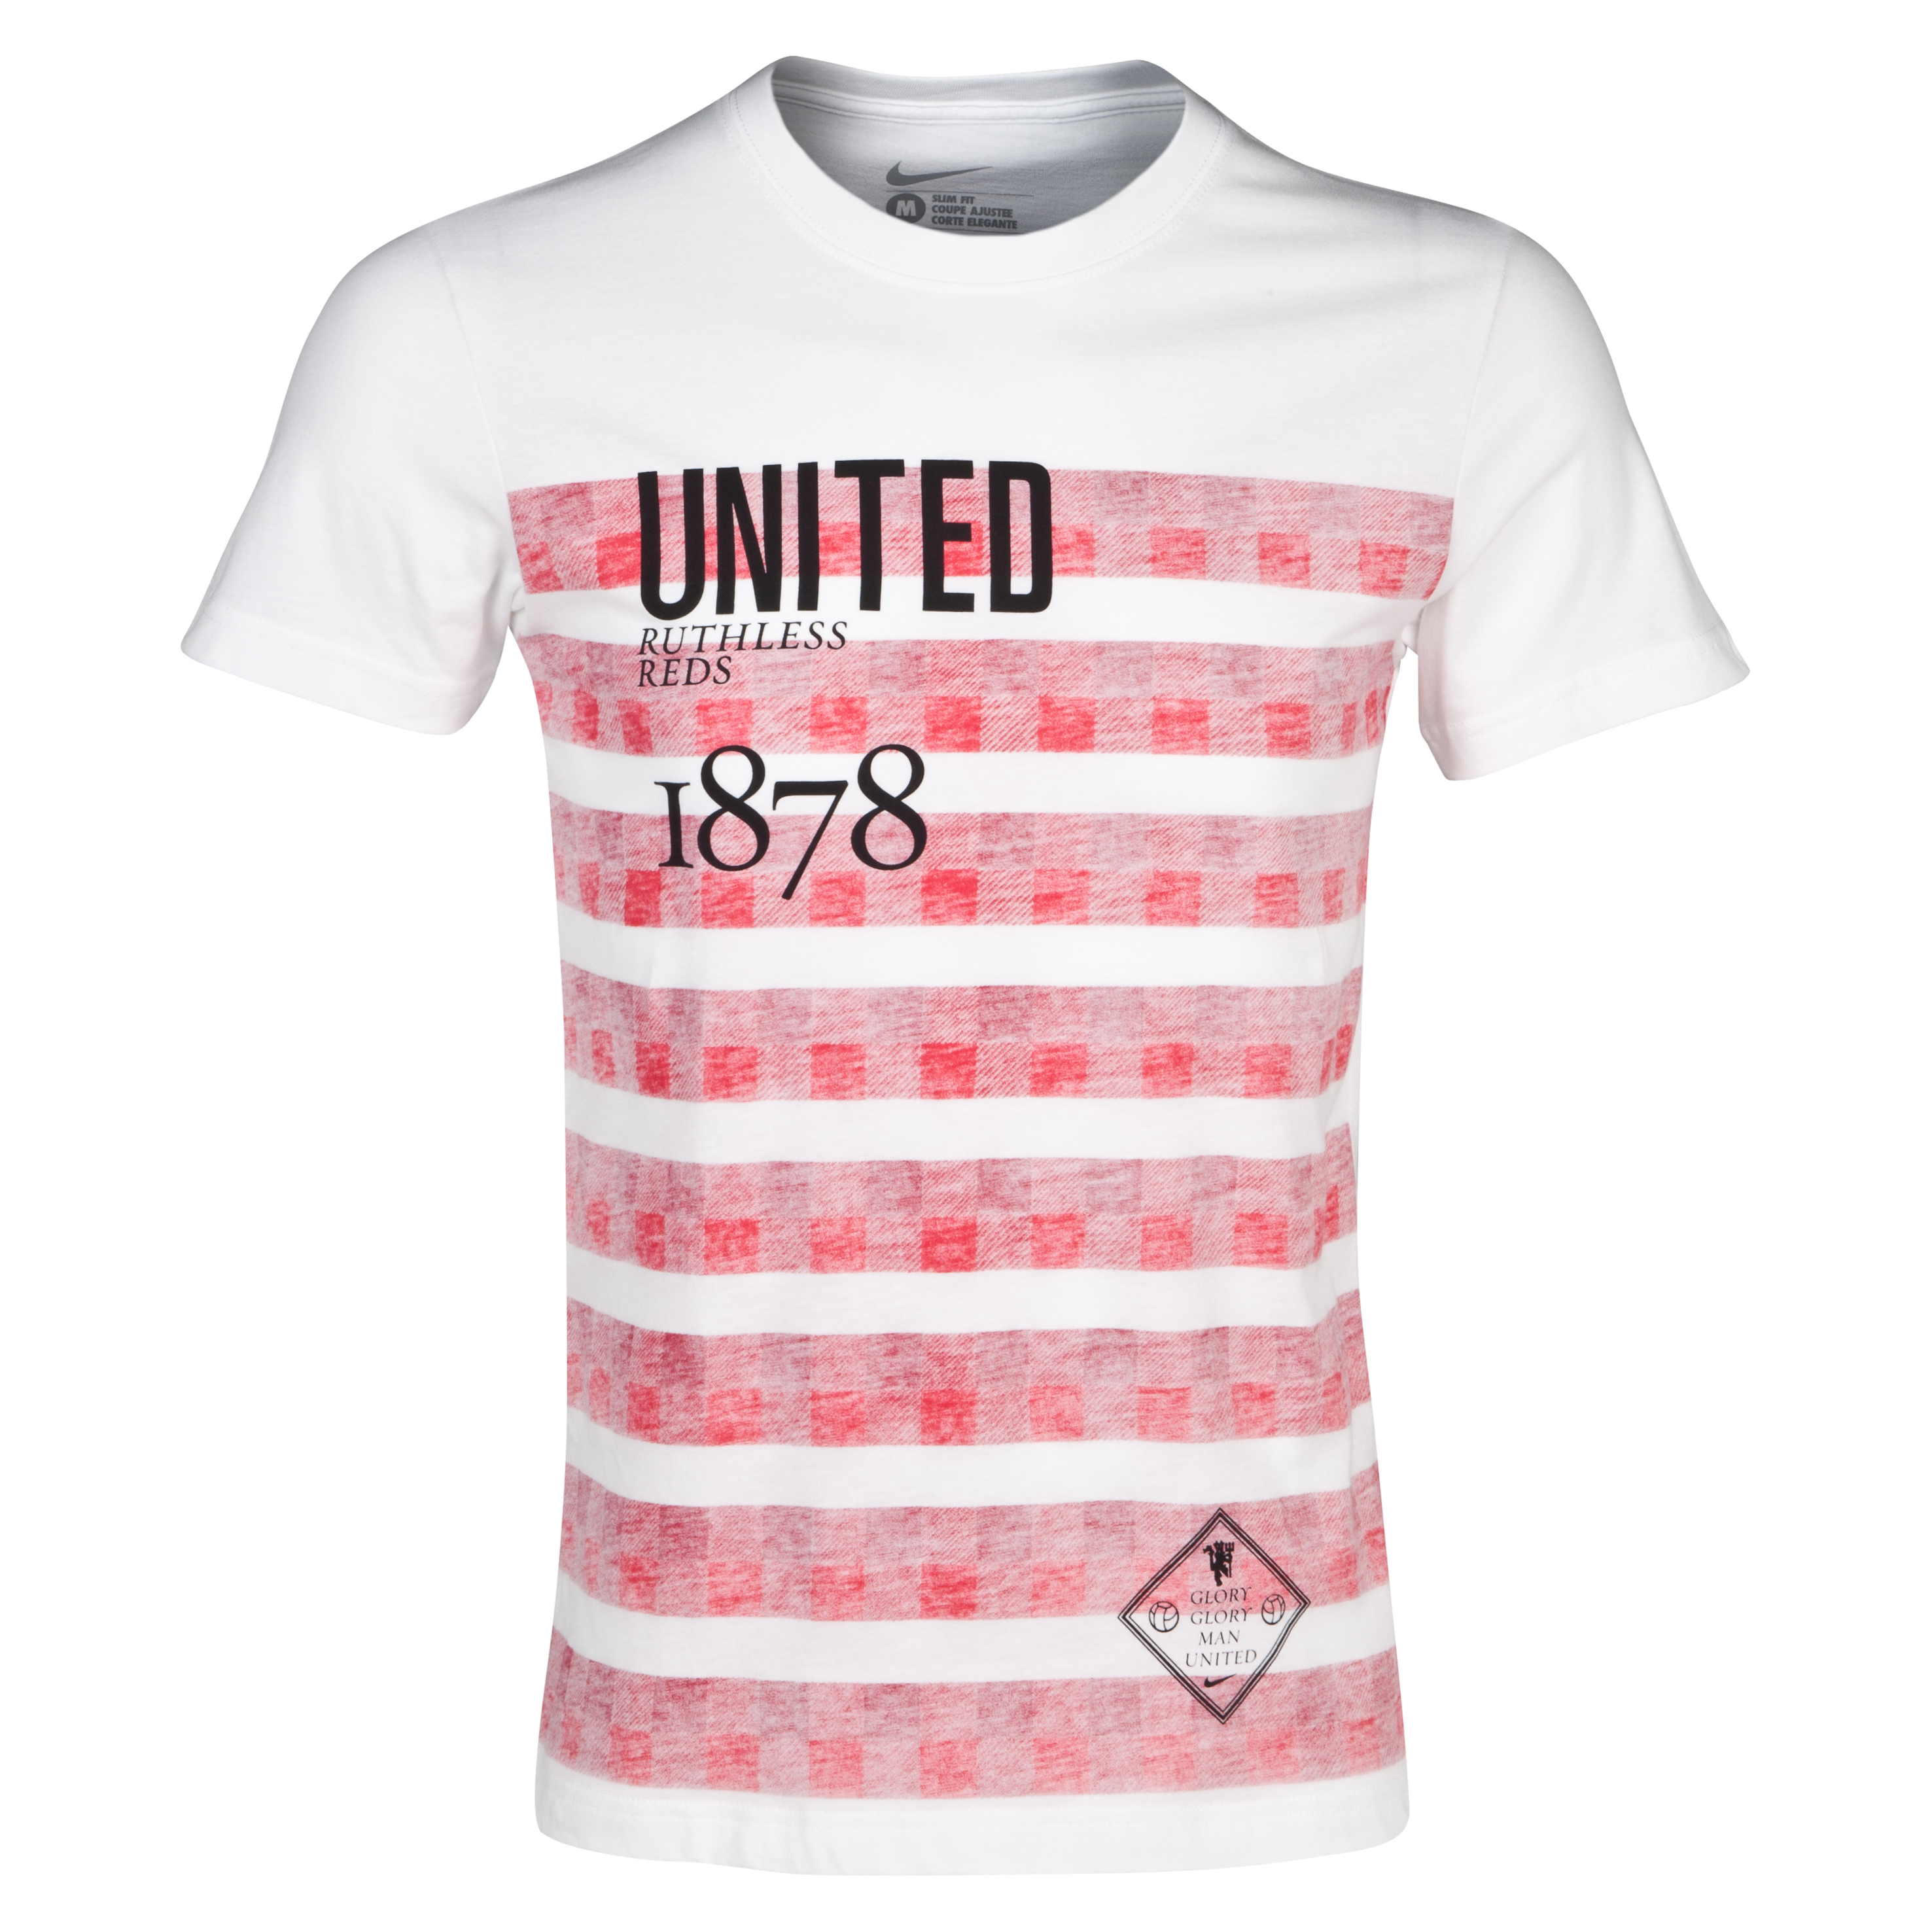 Manchester United Authentic T-Shirt - White